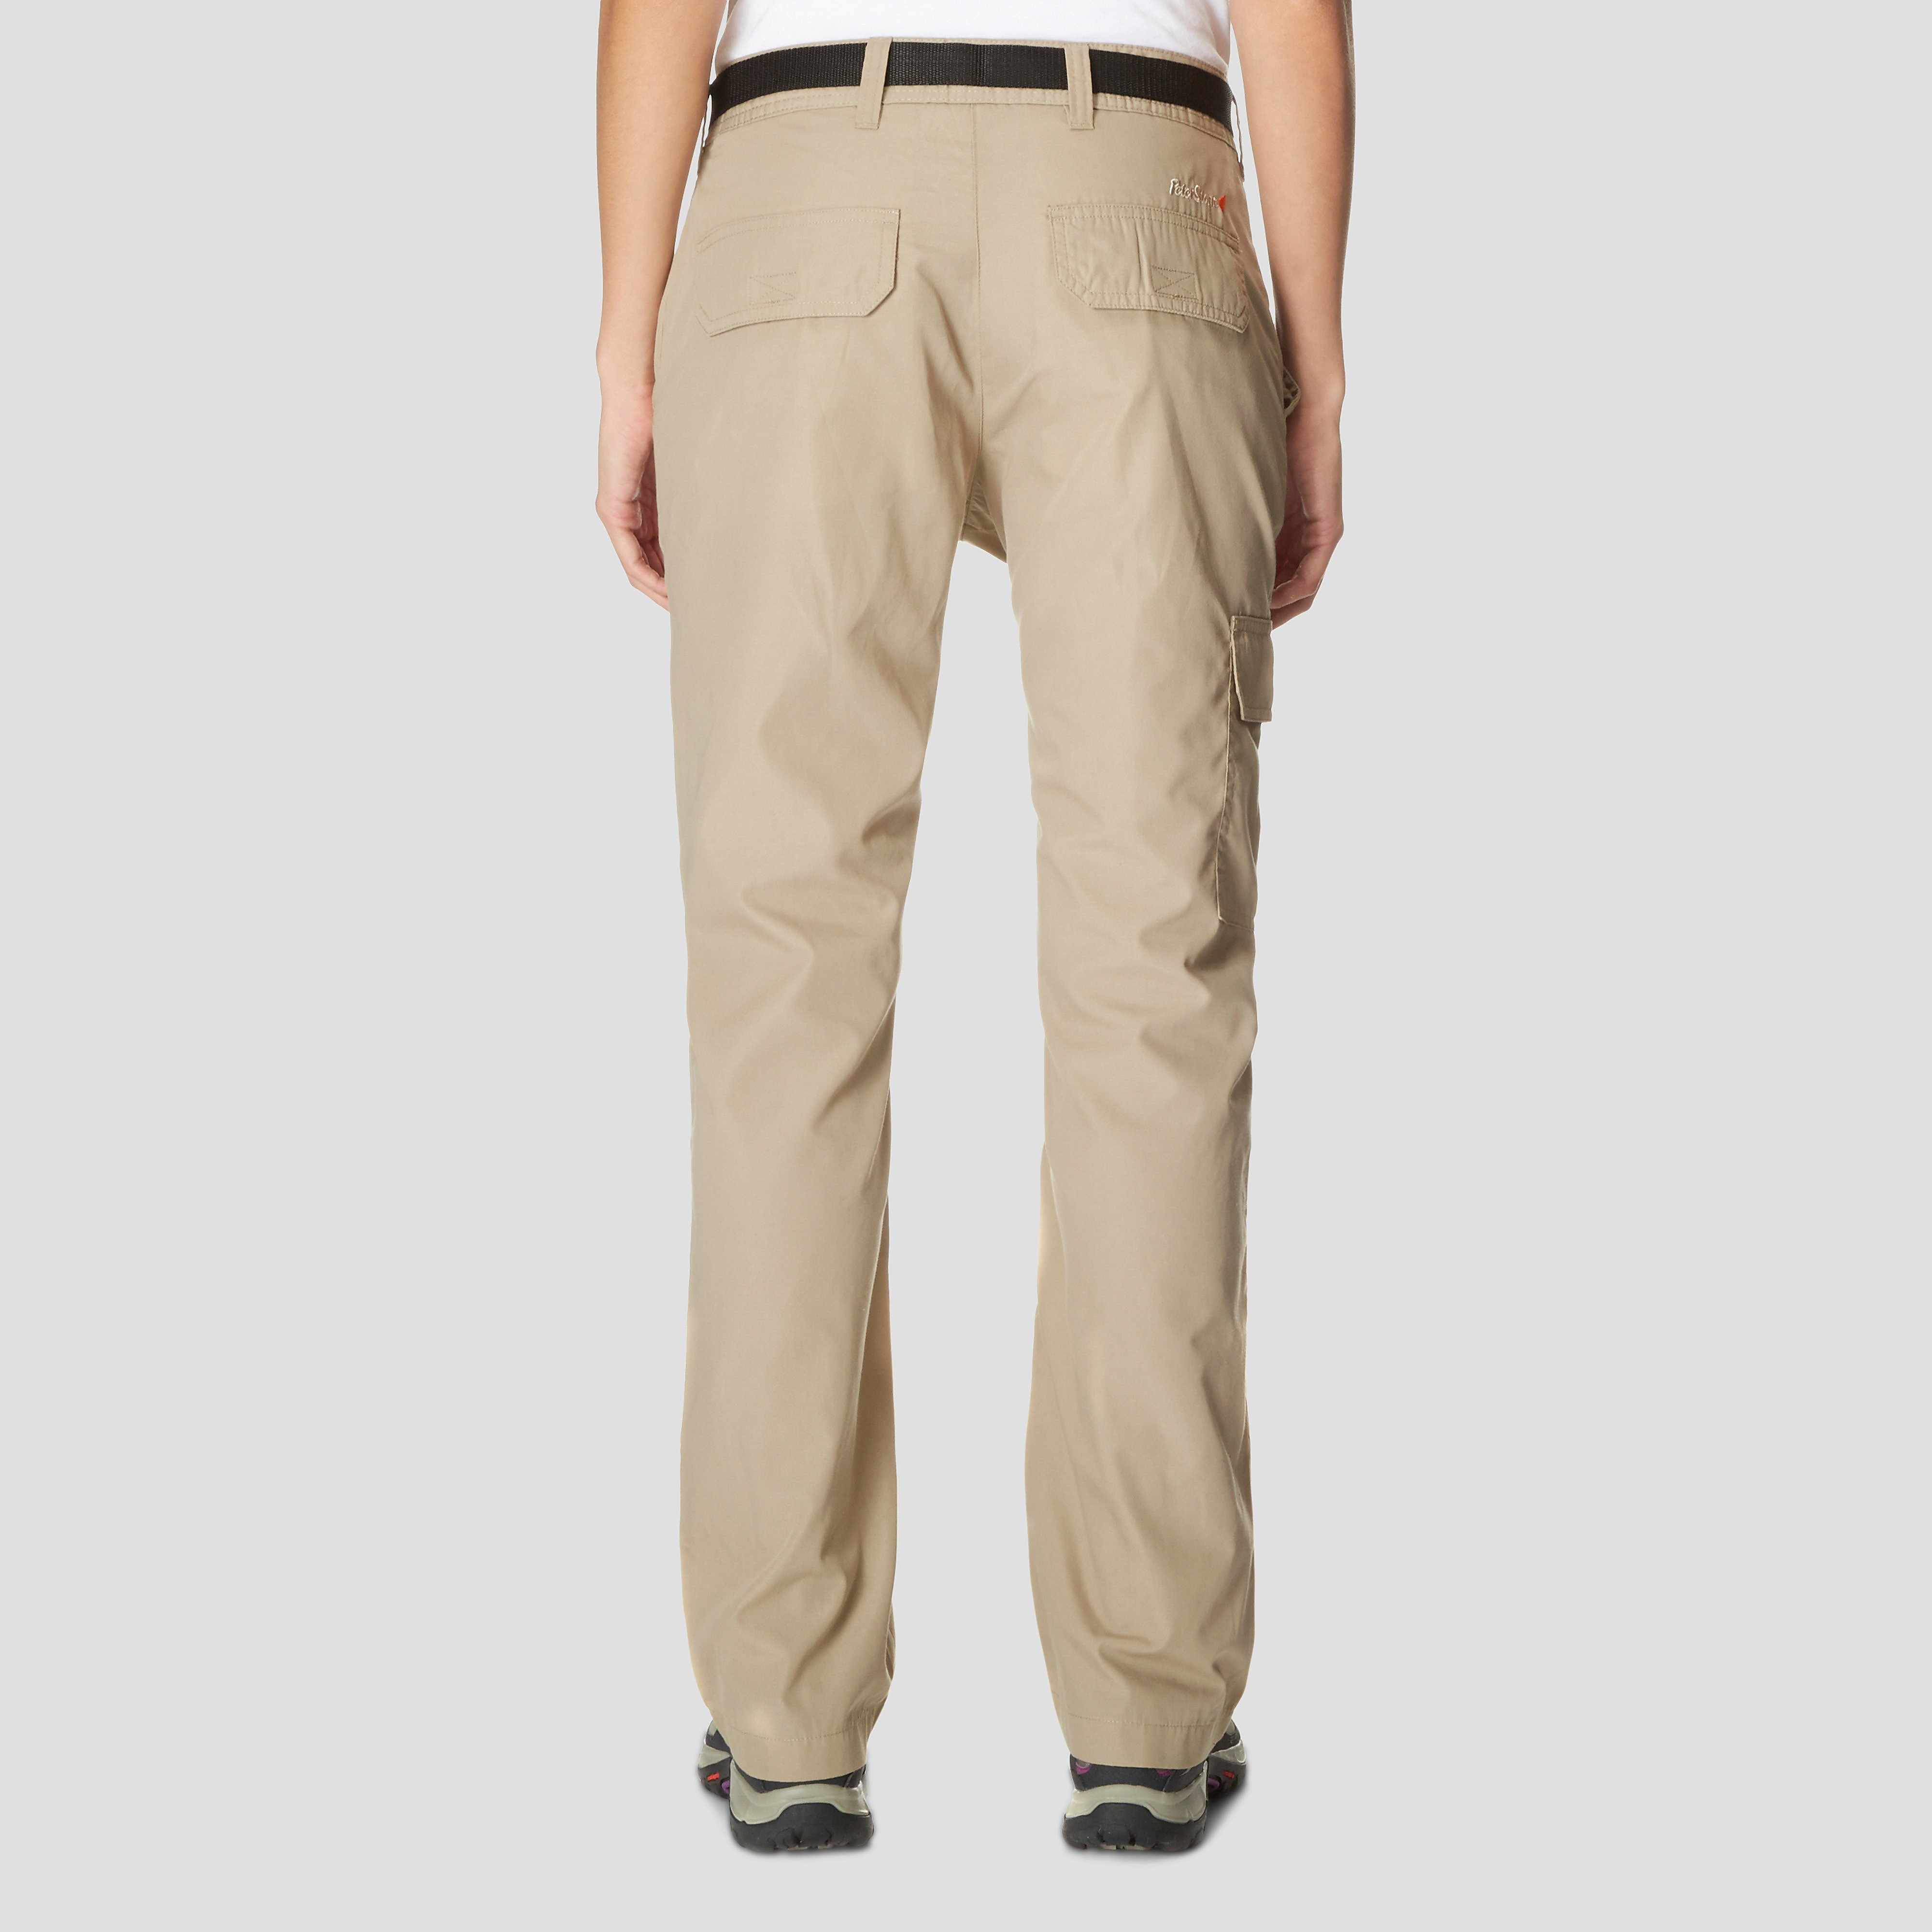 PETER STORM Women's Walking Trousers